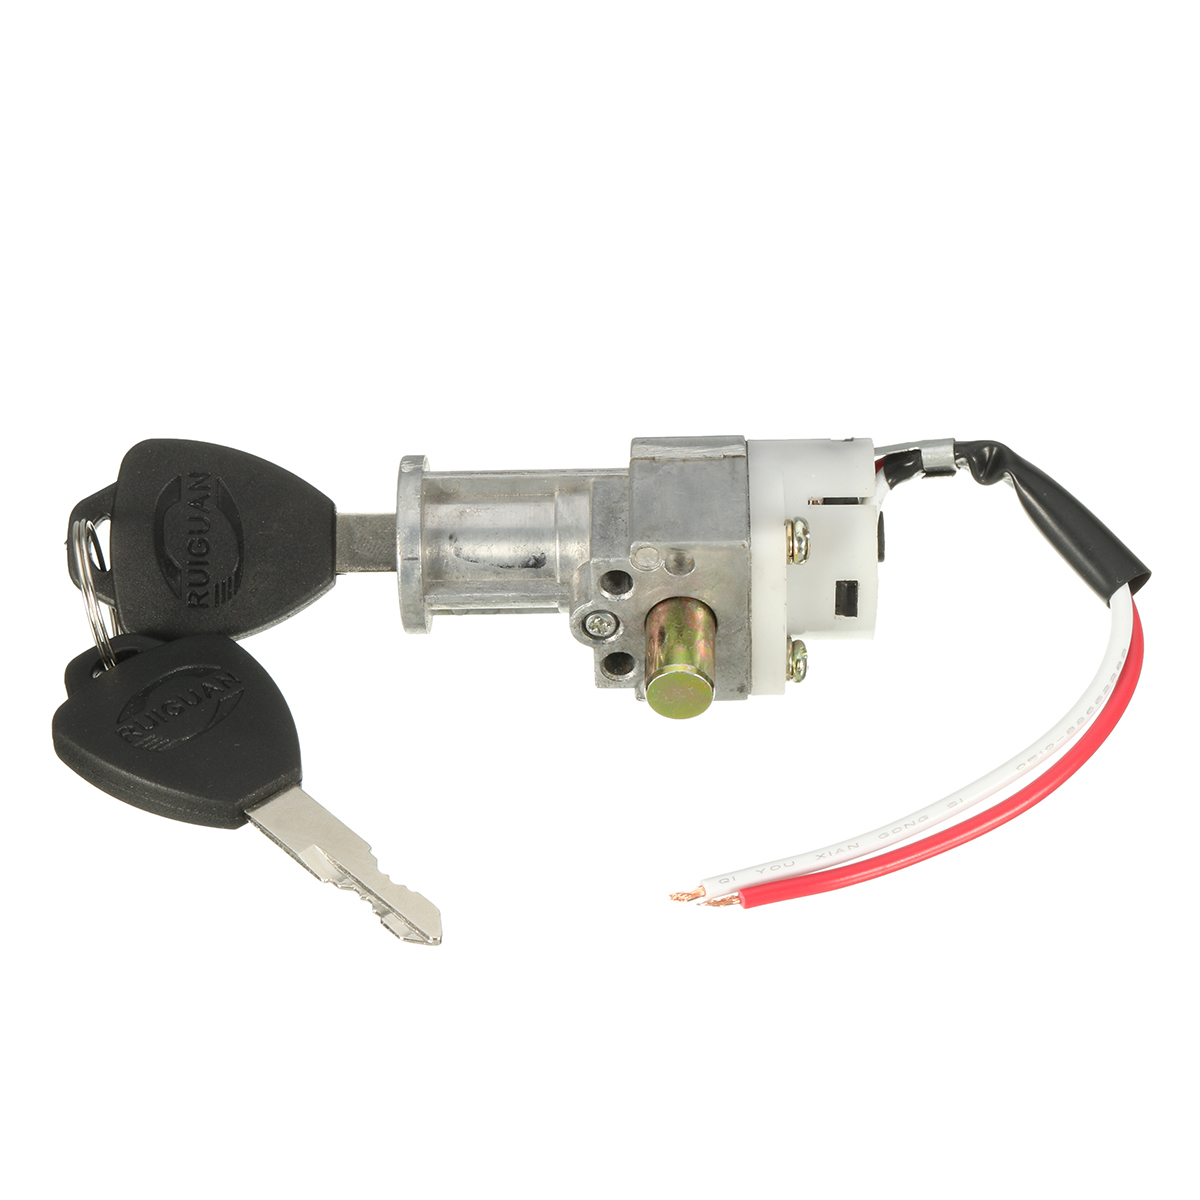 1x Universal Battery Chager Mini Lock With 2 Keys For Motorcycle Electric Bike Scooter E-bike Electric Lock With 2 Keys